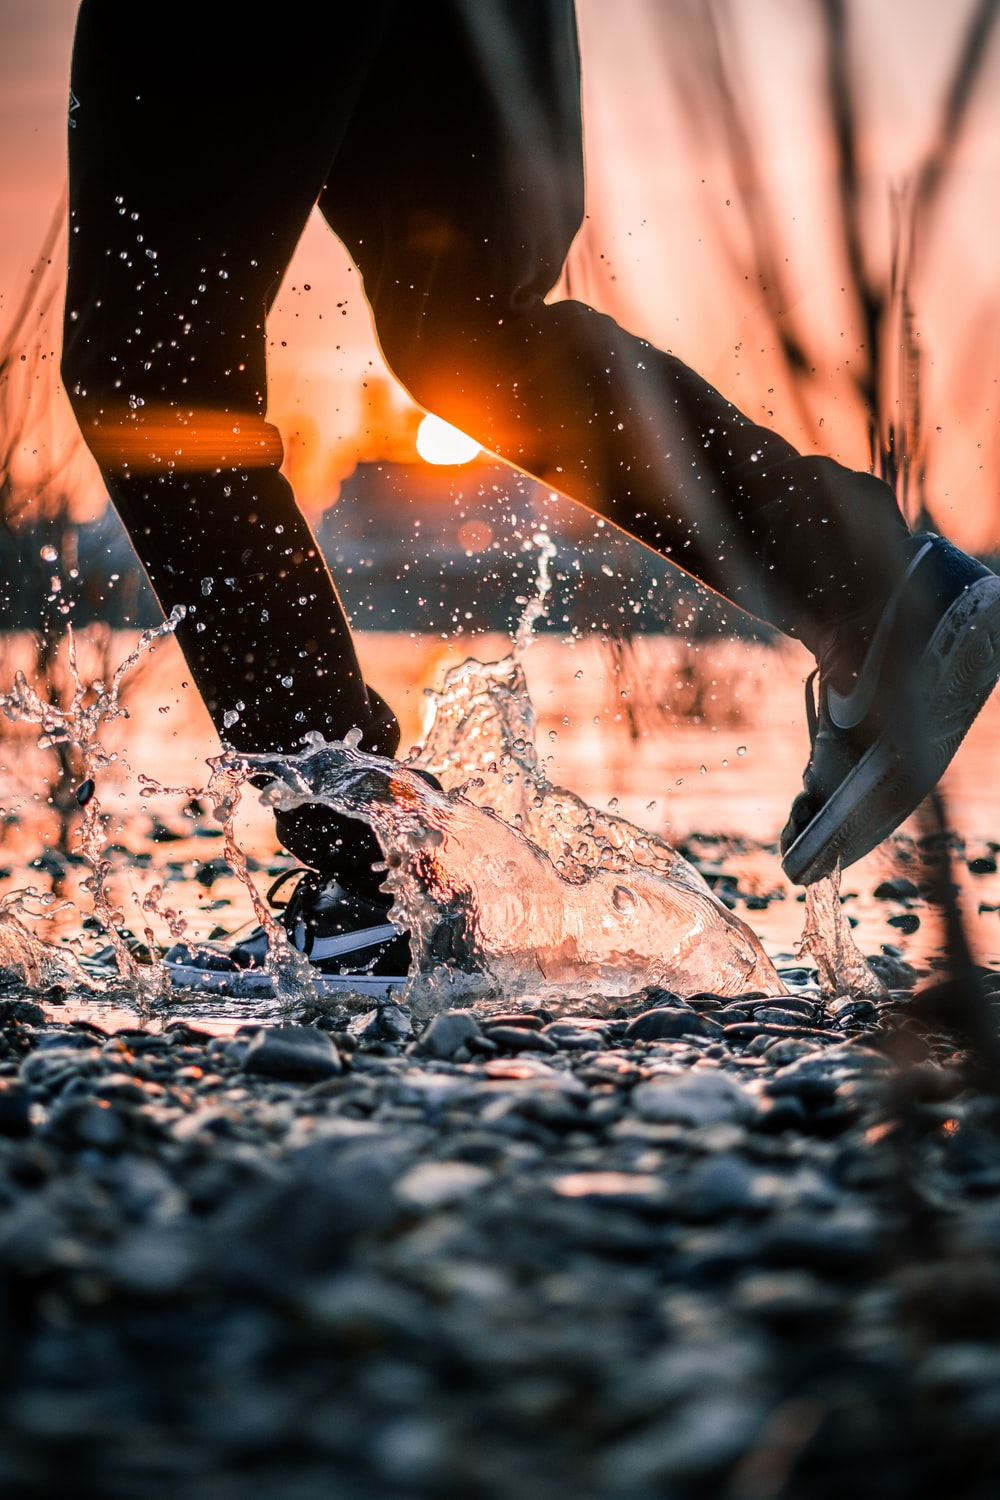 person in black and white nike athletic shoes standing on water